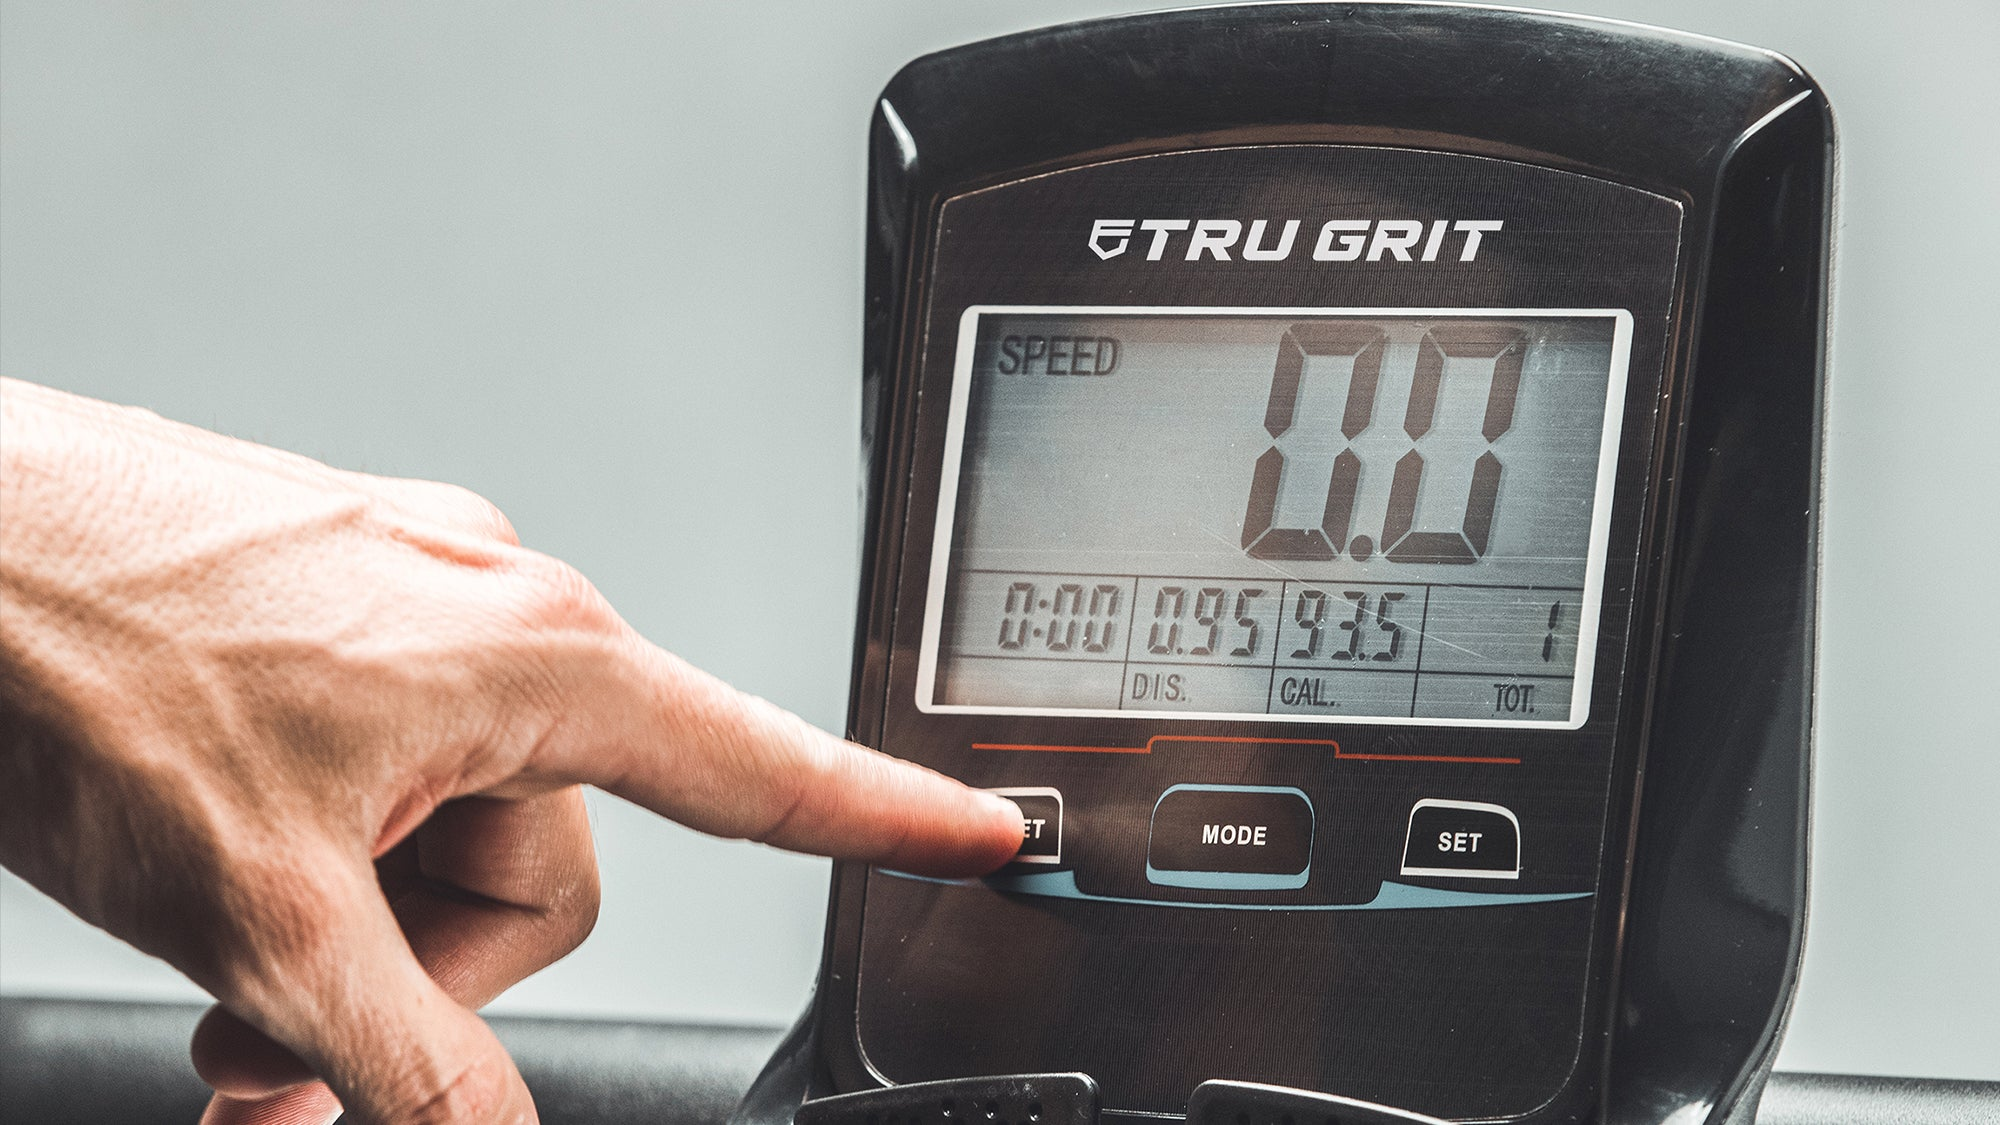 Tri Grit Fitness - Grit Runner. 100% manually operated treadmill you will train harder, break goals faster and crush the competition.